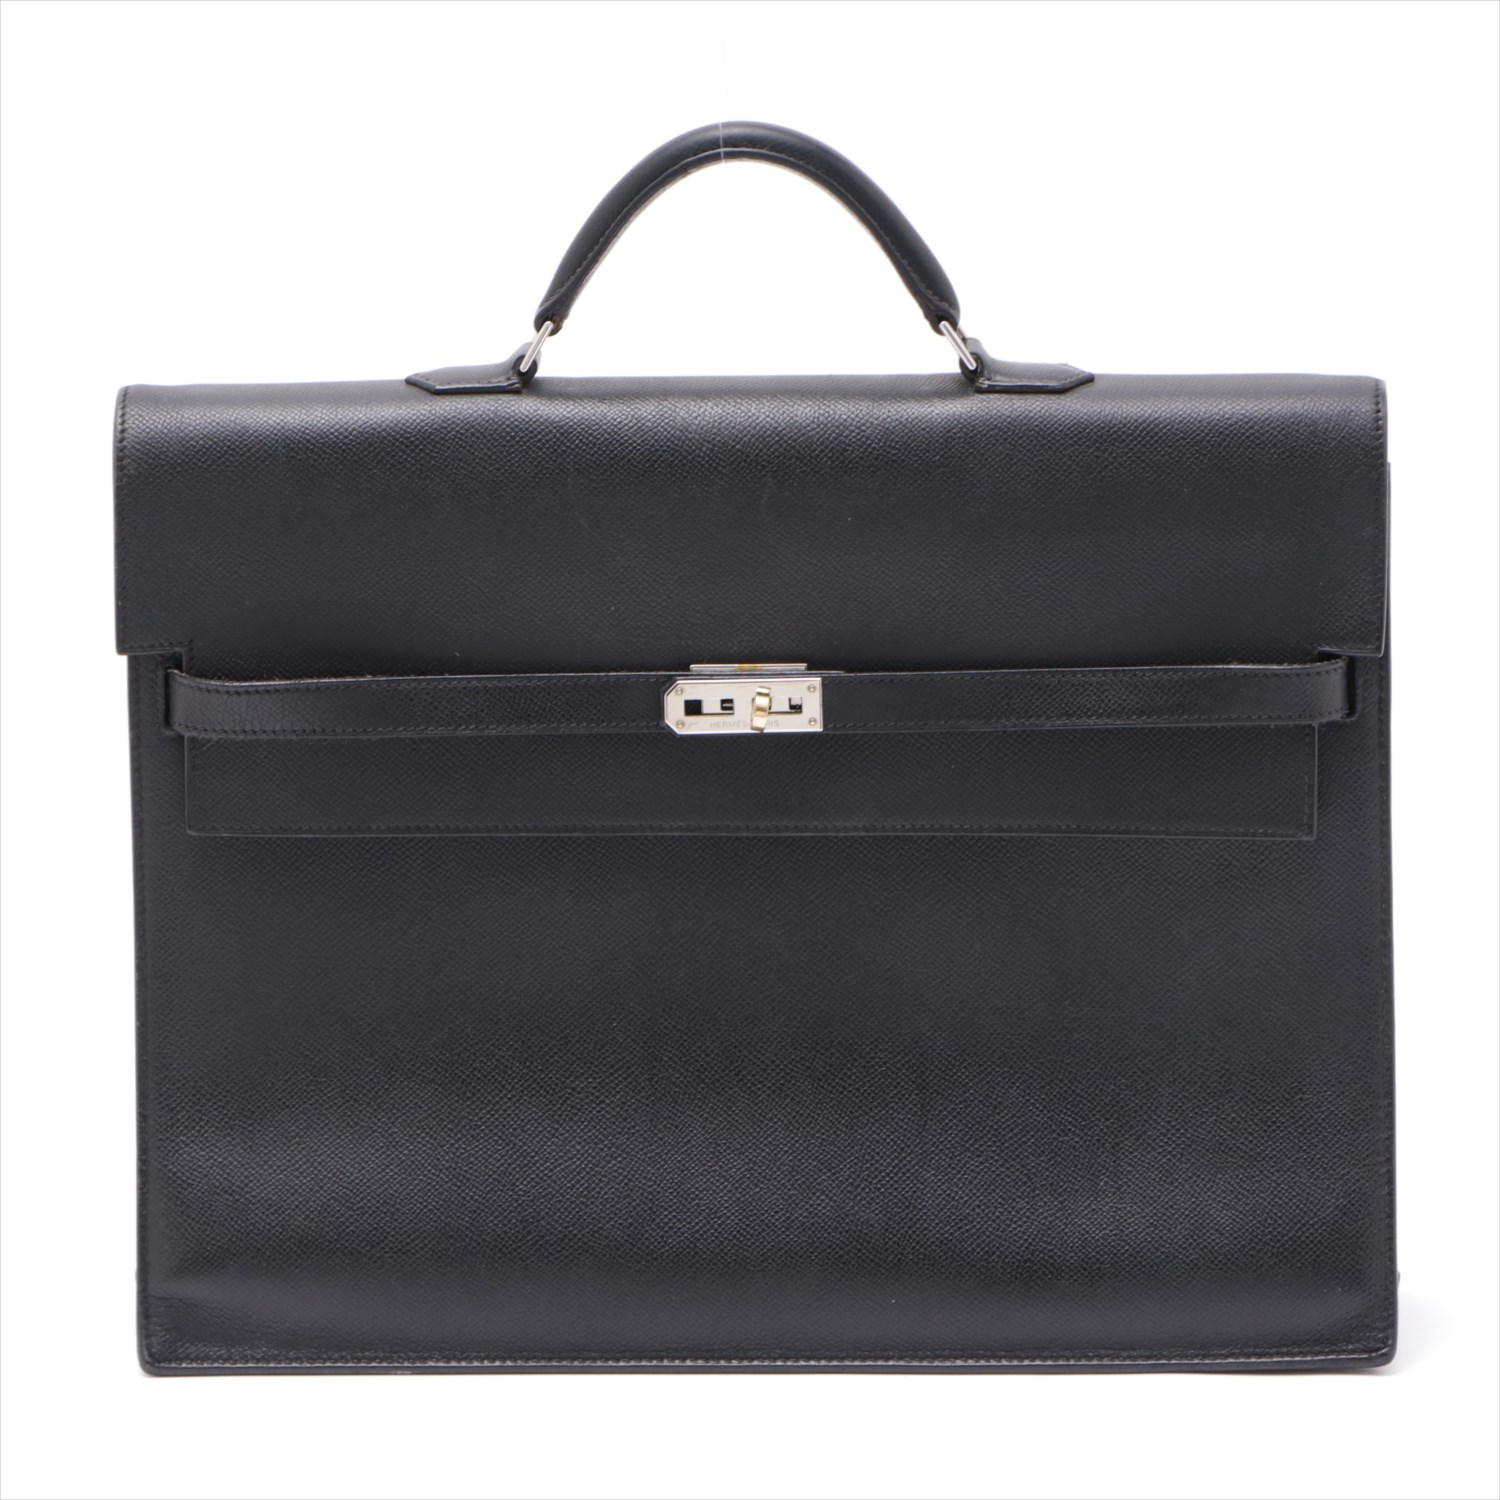 [Used goods] Hermes Kelly Depeche 38 Epsom business bag black Silver hardware I: 2005 years